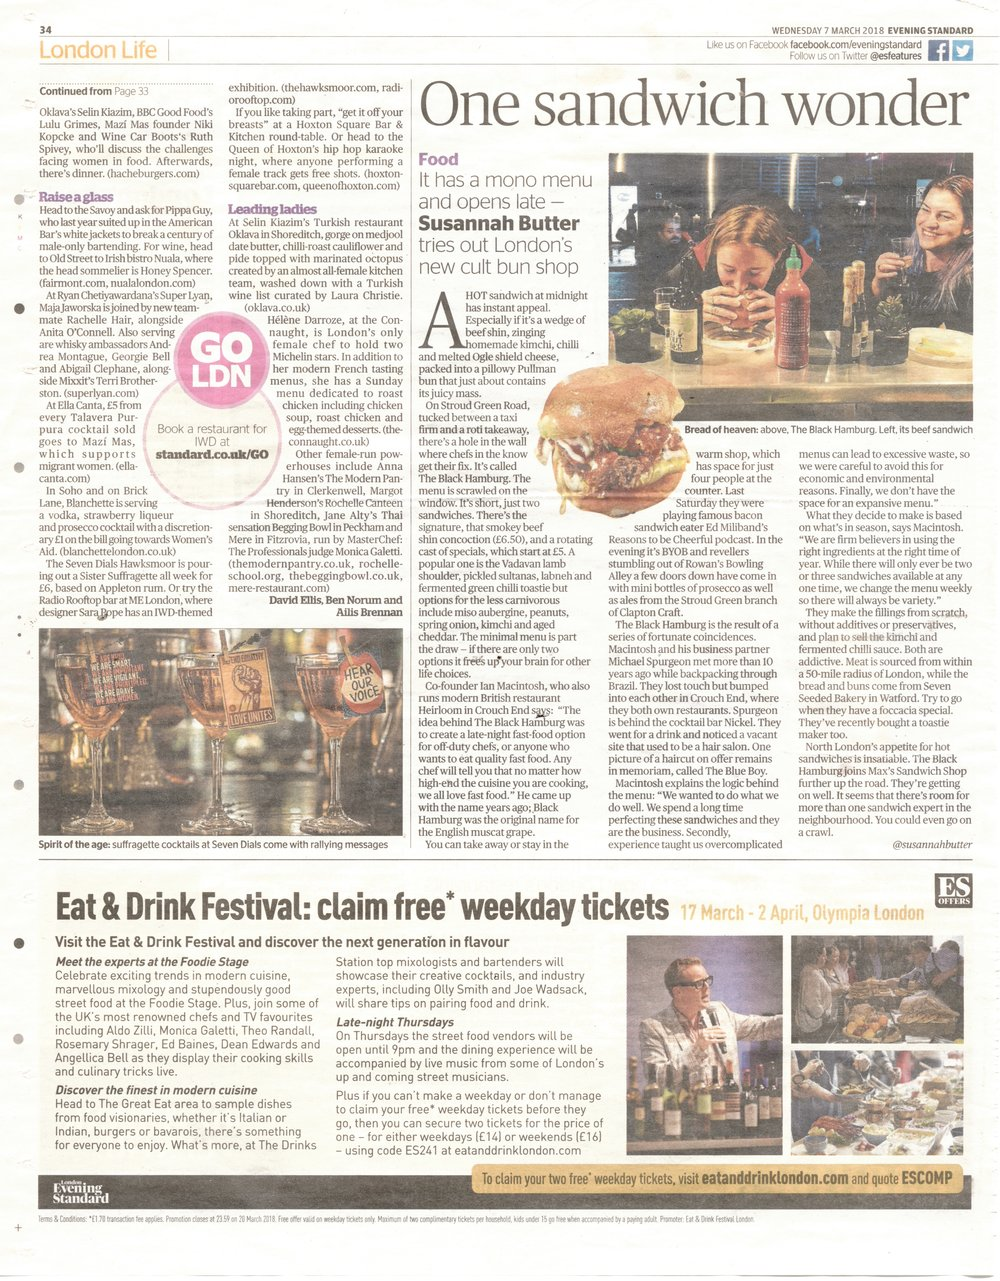 Evening Standard - Feature 2 Nuala - March 2018_preview.jpeg